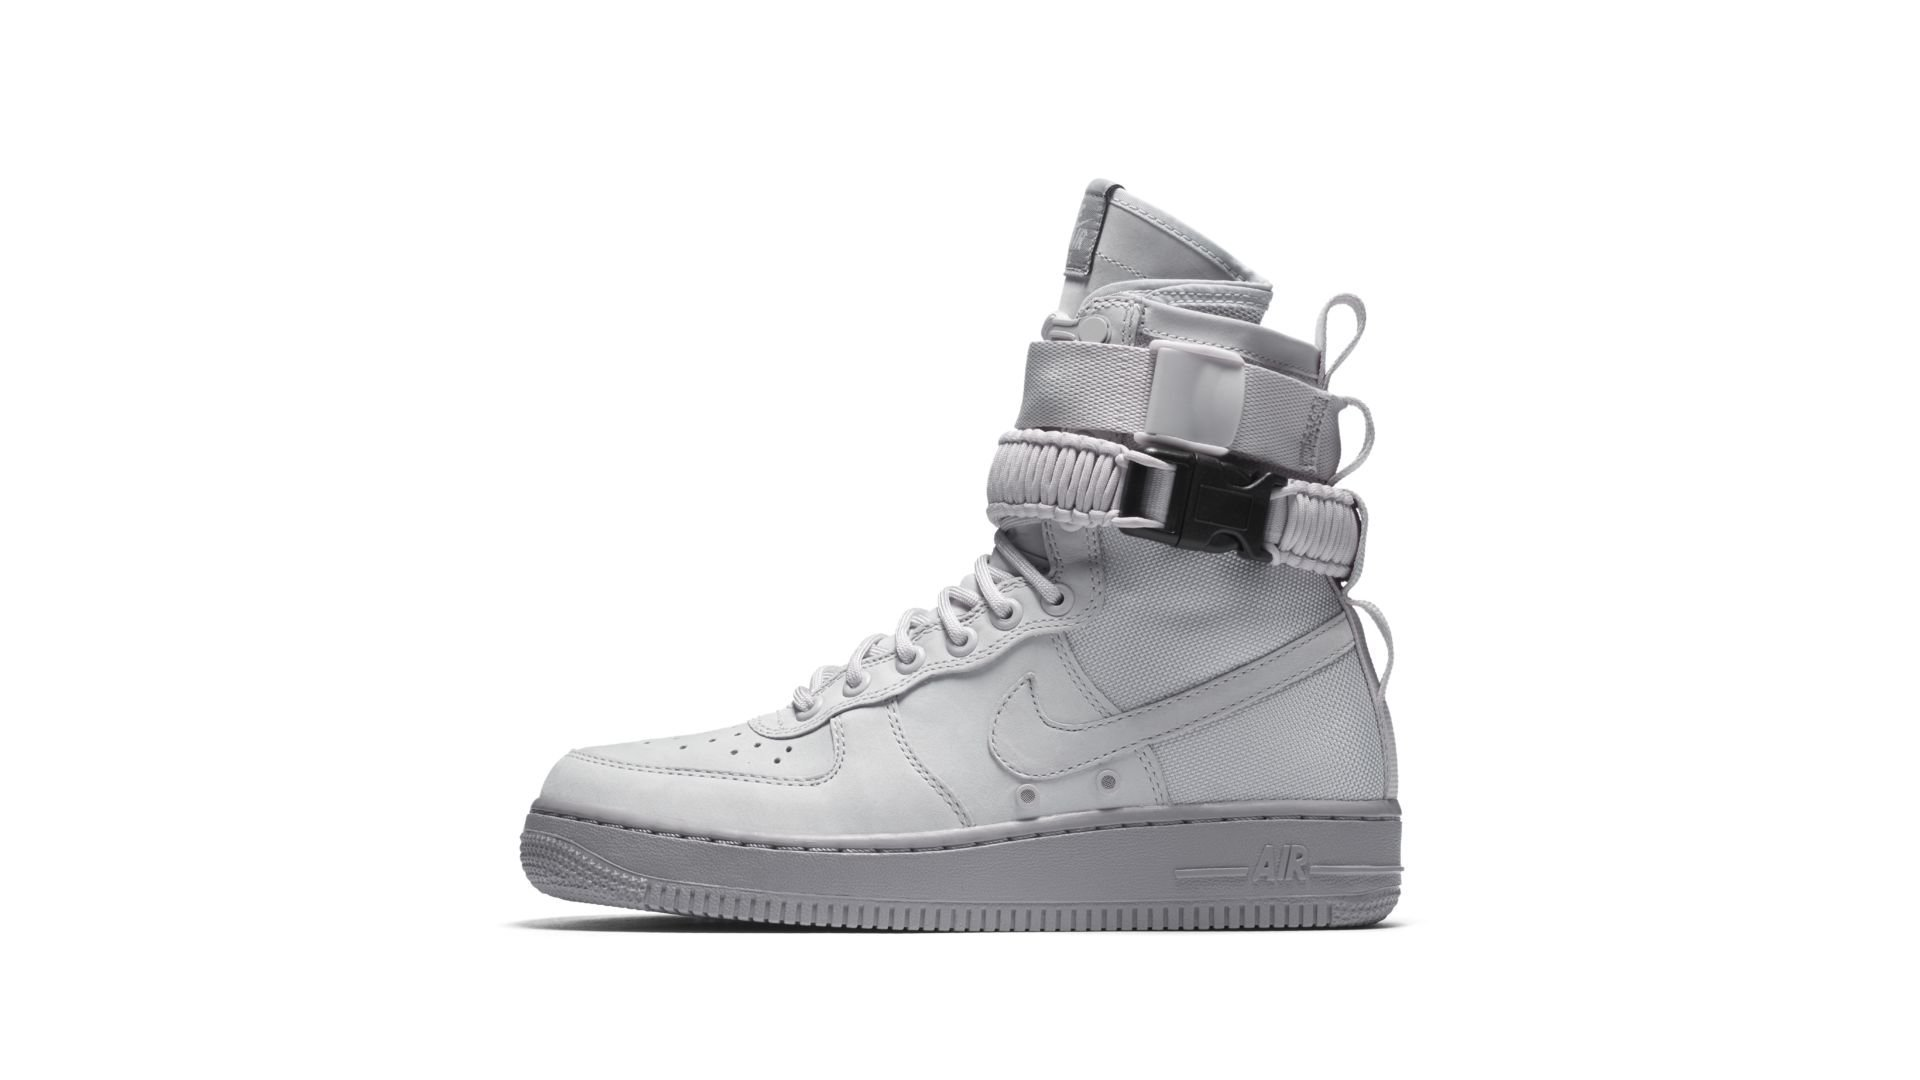 Nike SF Air Force 1 High Vast Grey (W) (857872 003)